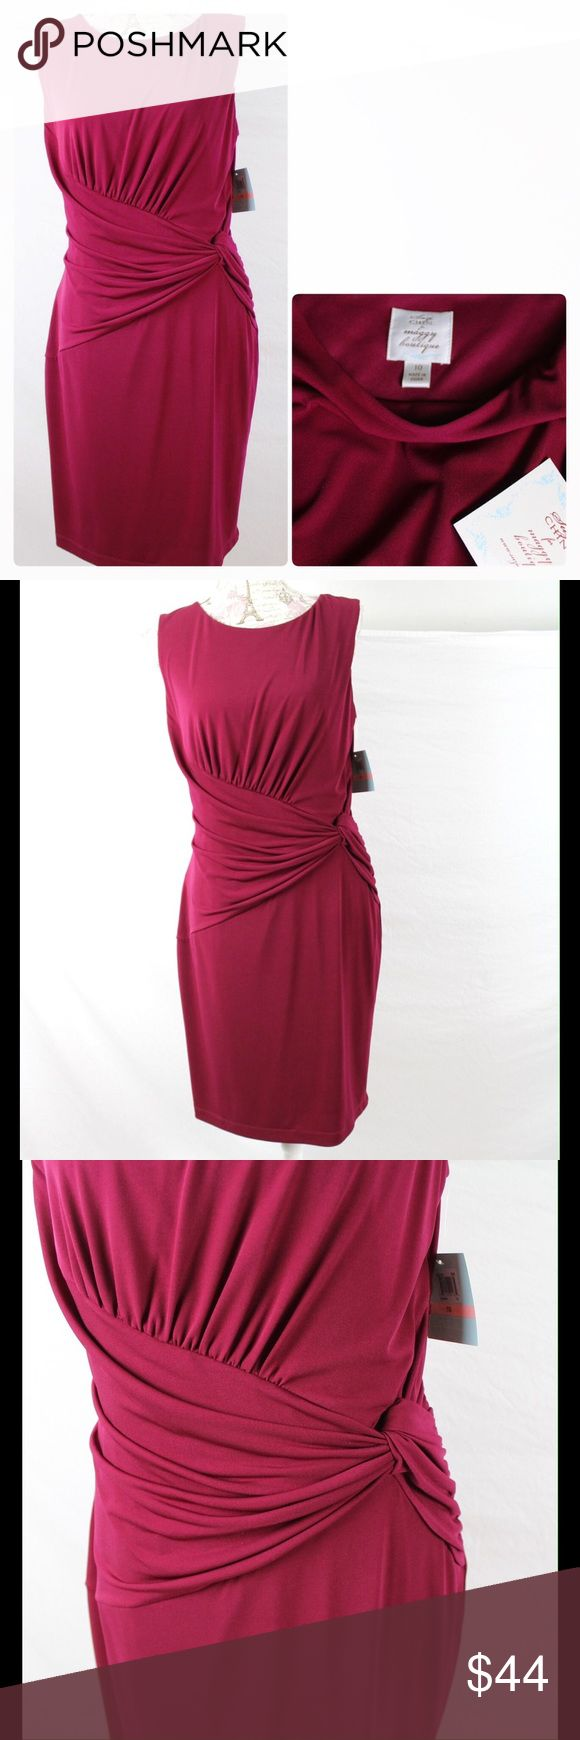 """Suzi Chin Sleeveless Side Ruche  Dress Sangria 10 This is a new Suzi Chin sleeveless side ruched sheath dress in Sangria color, size 10. Side gathering/ruching at leftside of waist, round neck, hidden side zip.  When flat on front side, underarm to underarm measures 20"""" across, waist 15"""", hips 20"""". Total length is 38 inches. In new condition and ready to wear! Suzi Chin for Maggy Boutique Dresses"""